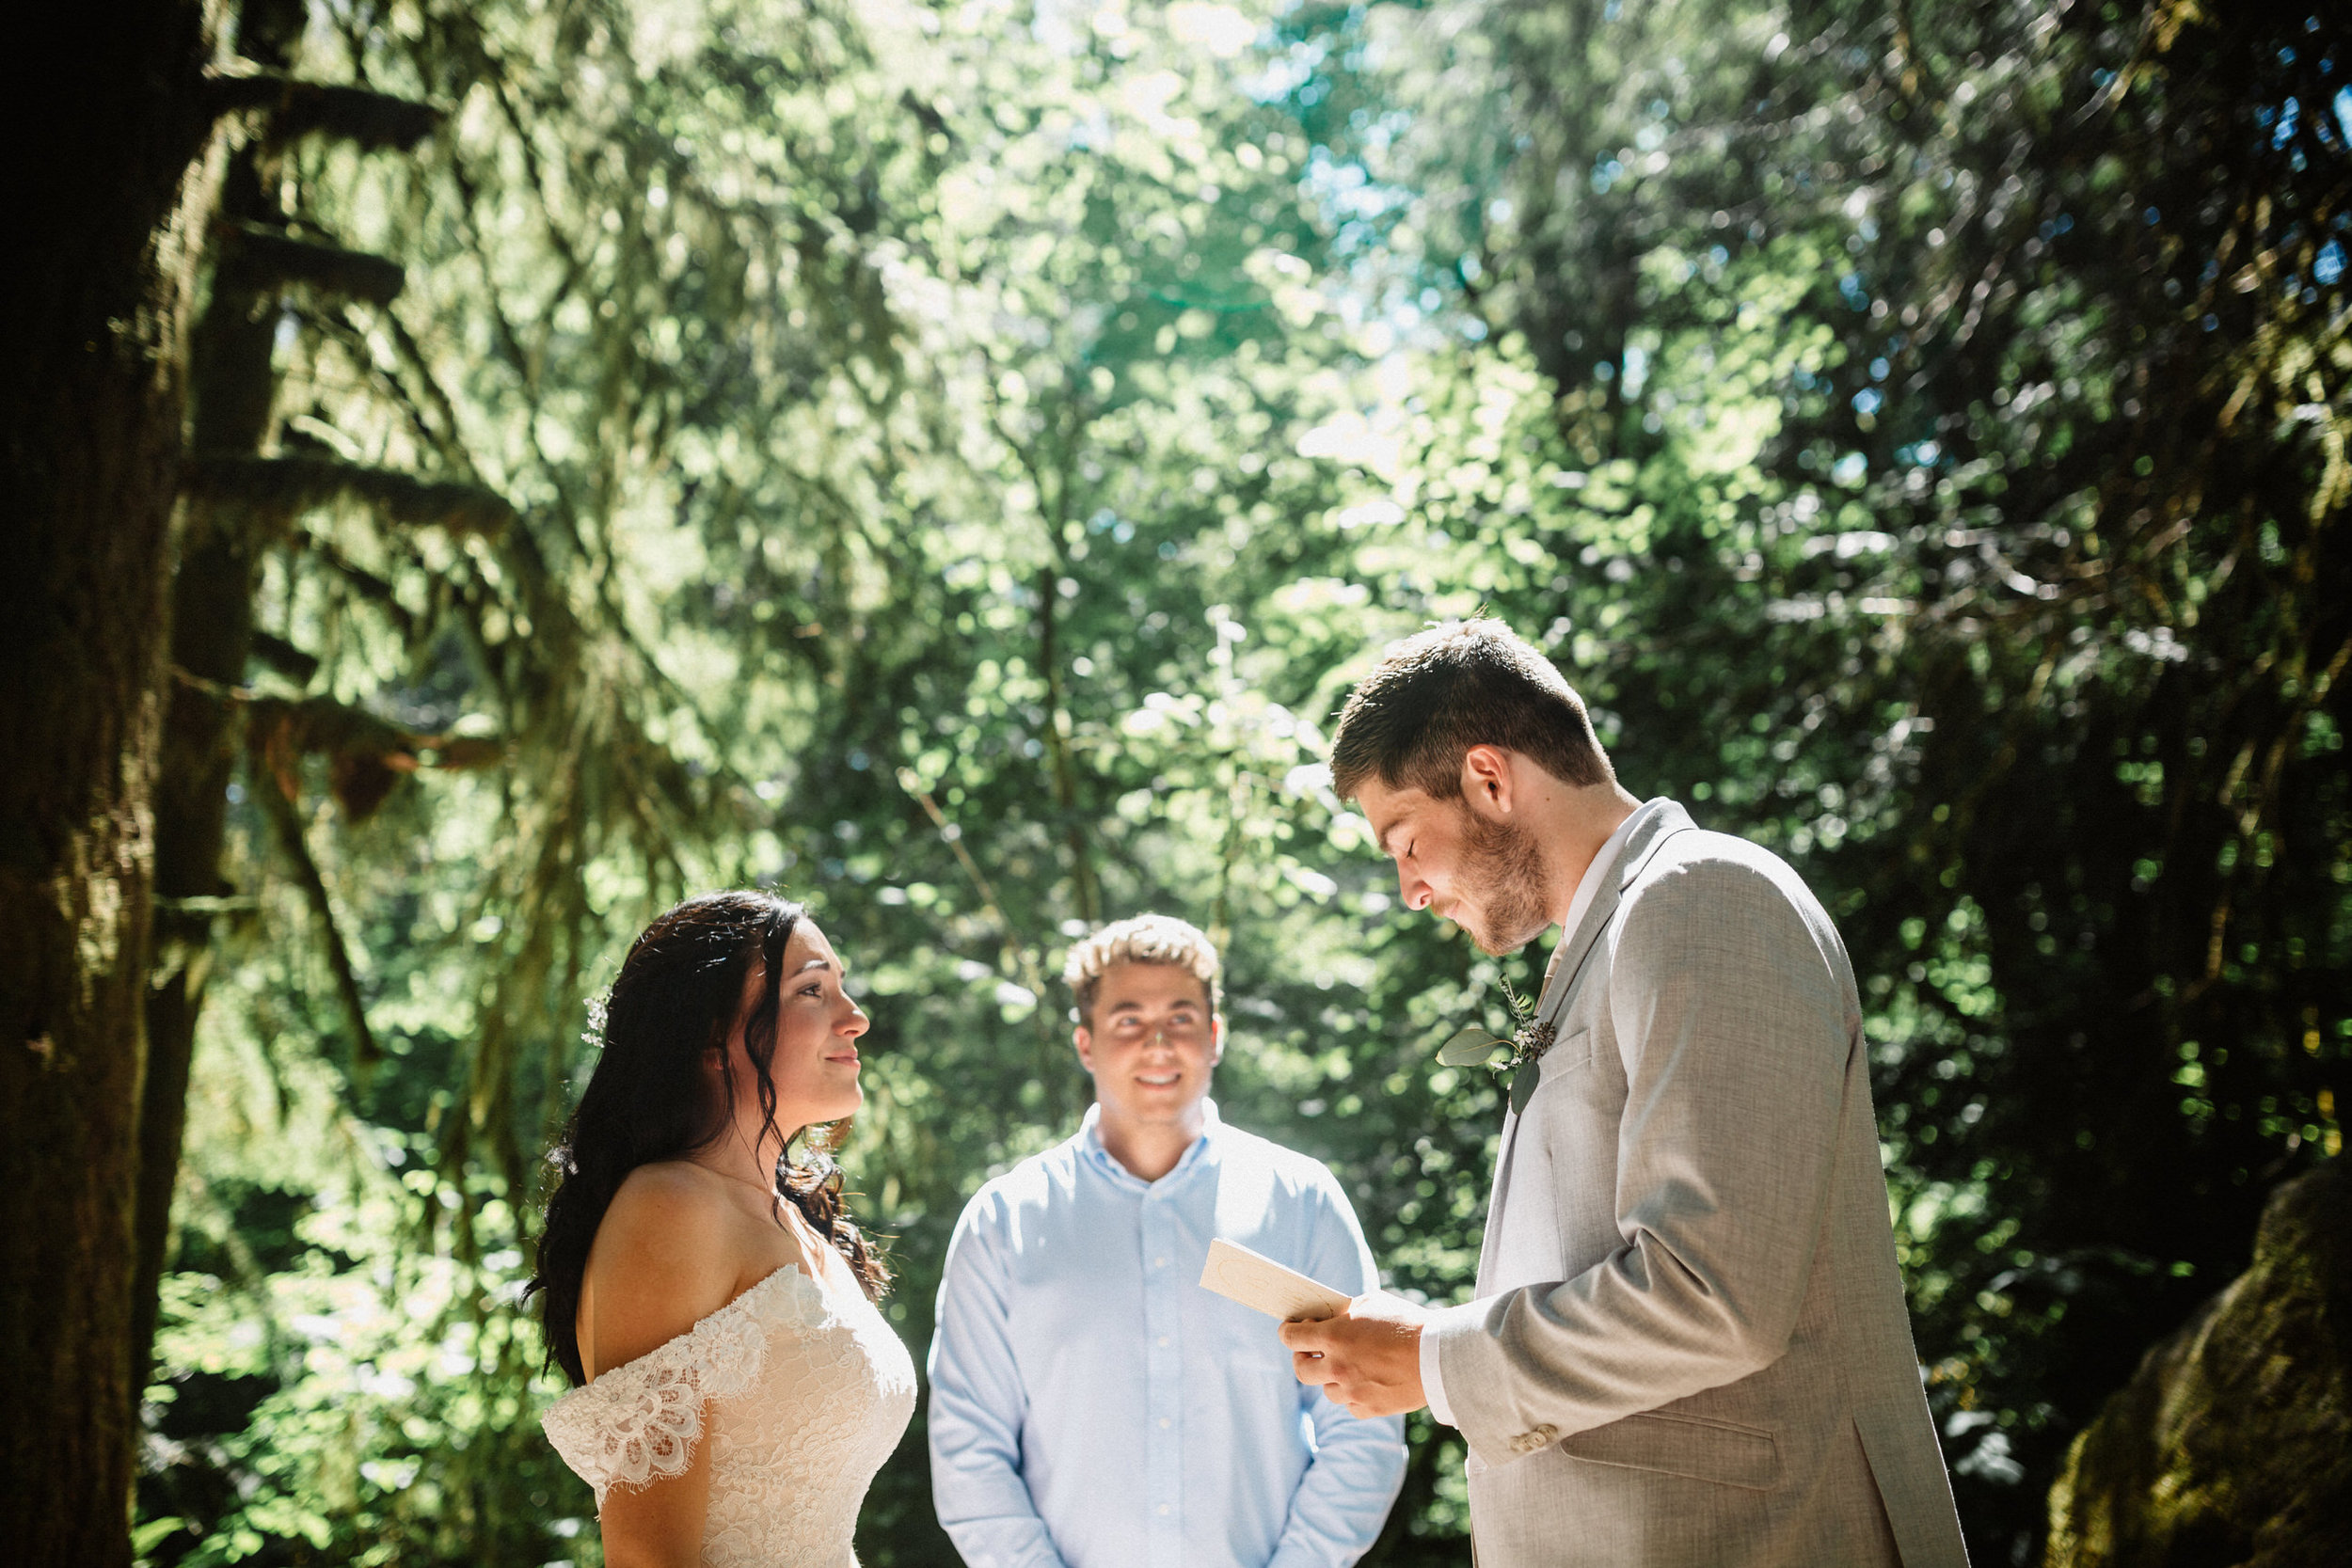 MT Hood Wildwood elopement wedding oregon portland photography0047.JPG